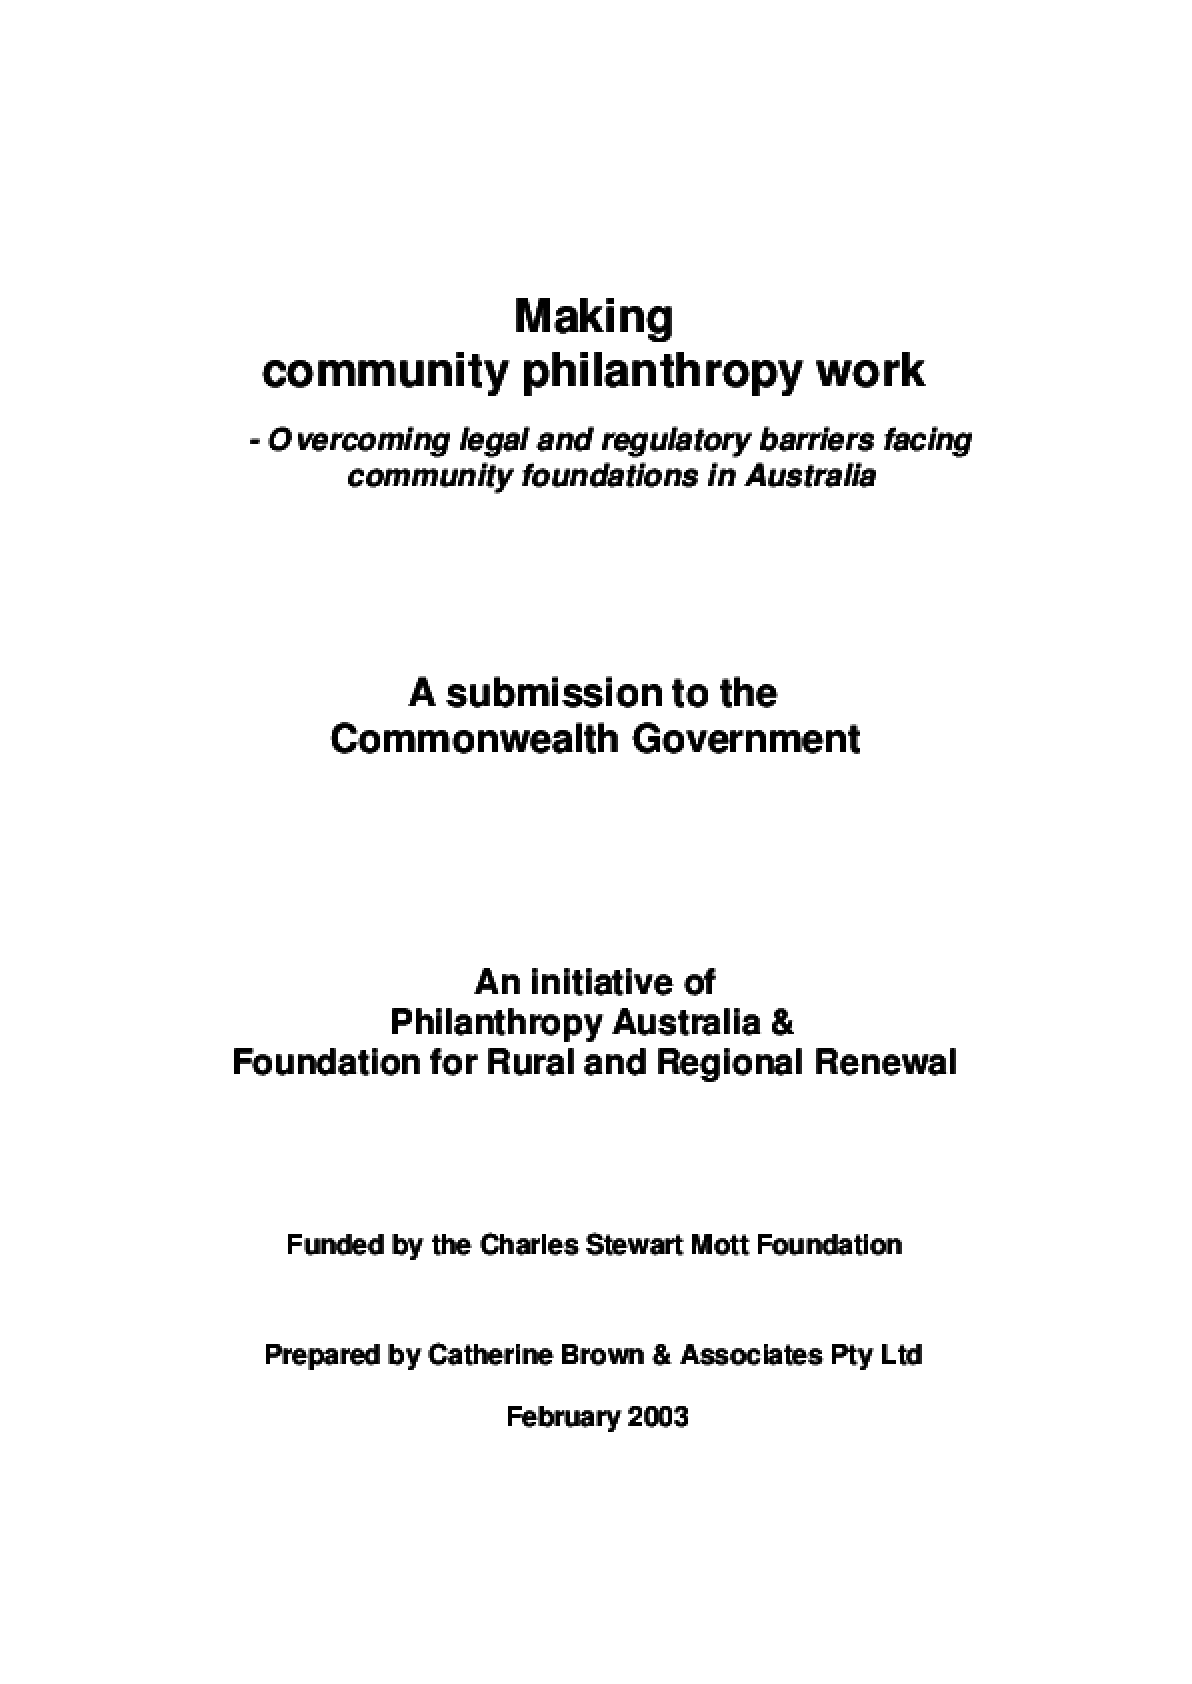 Making Community Philanthropy Work: Overcoming Legal and Regulatory Barriers Facing Community Foundations in Australia